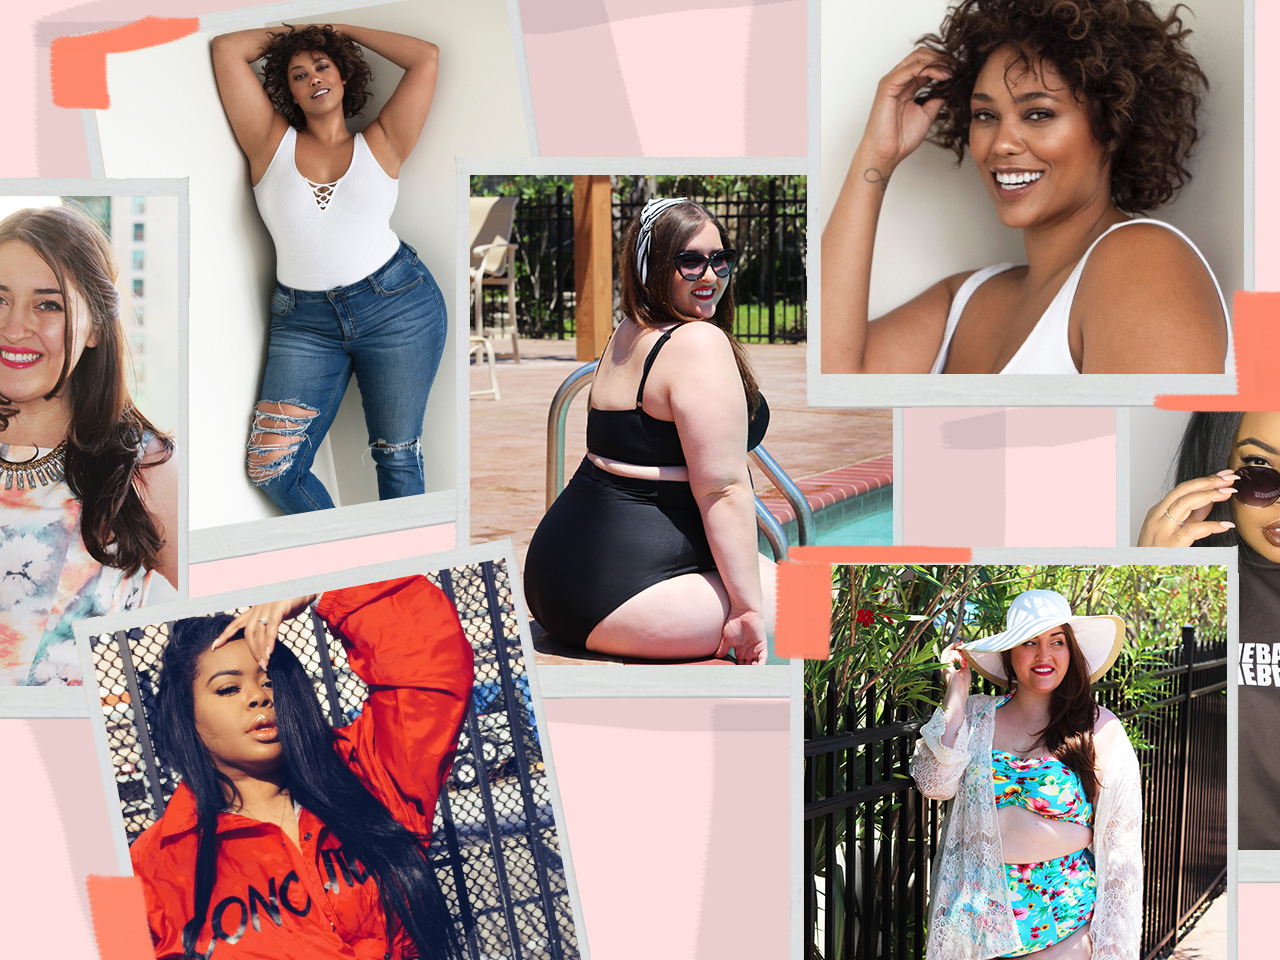 Canadian style influencers Brittnee Blair, Diana Di Poce and Sashagai Ruddock weigh in on finding plus-size fashion.